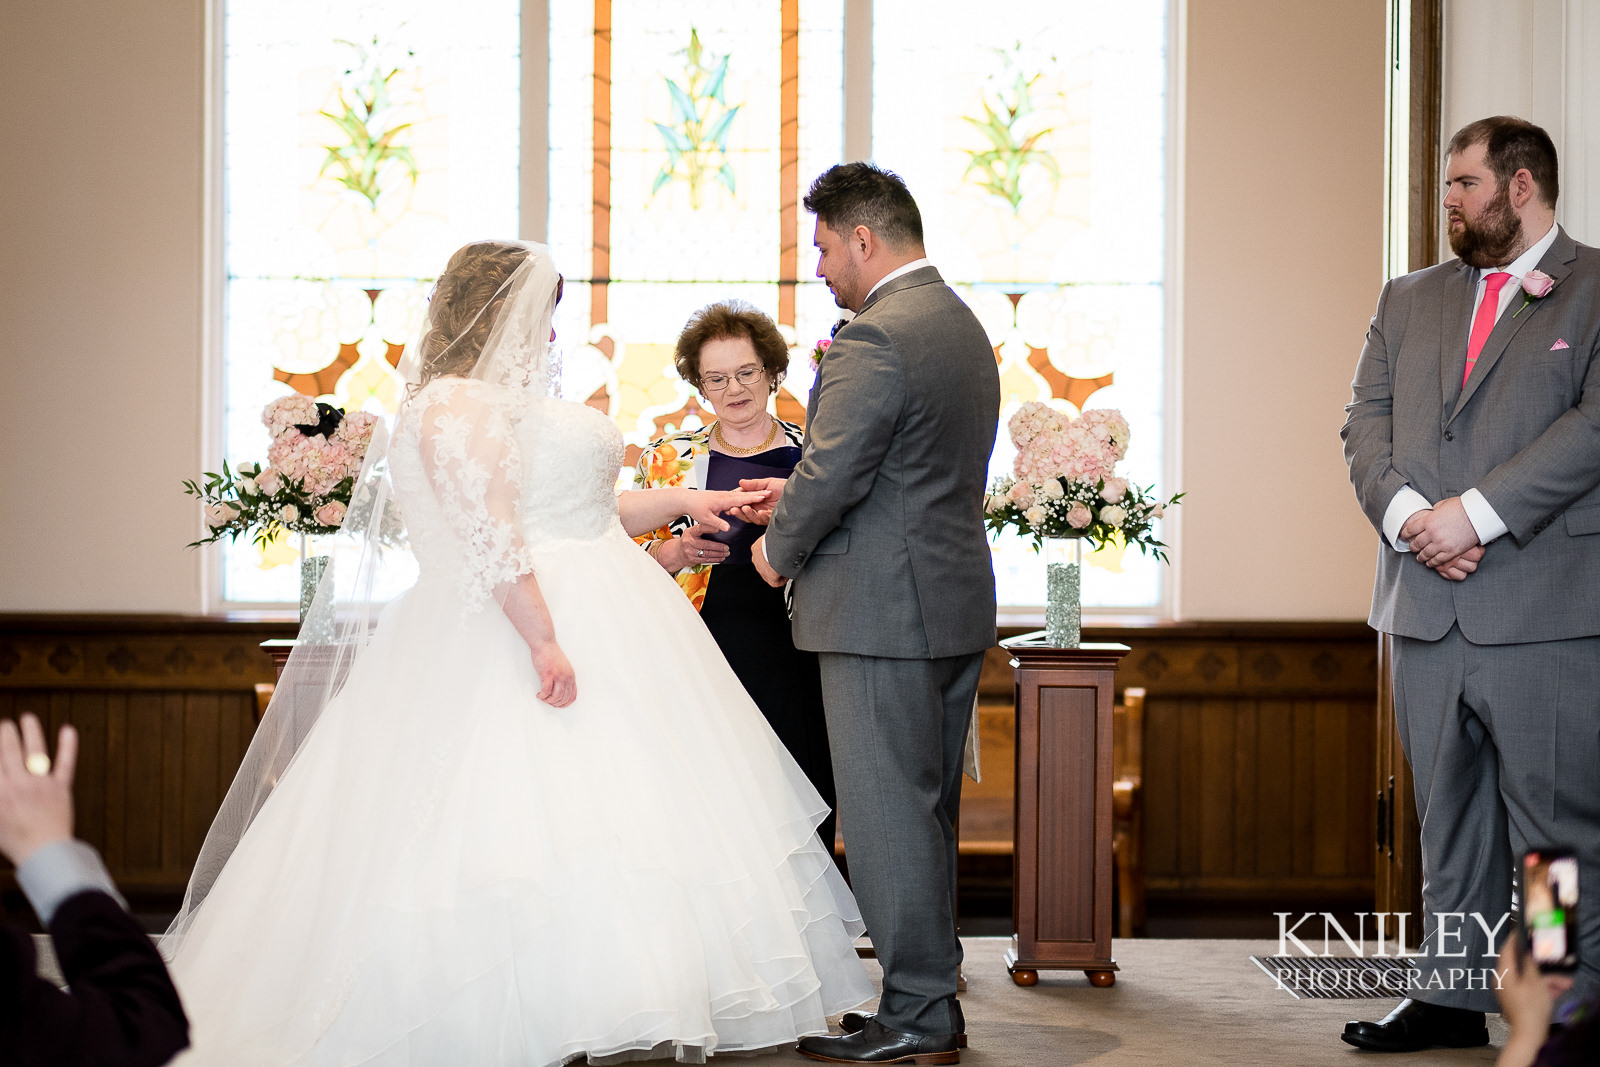 041 - Westminster Chapel - Rochester NY wedding photo - Kniley Photography.jpg